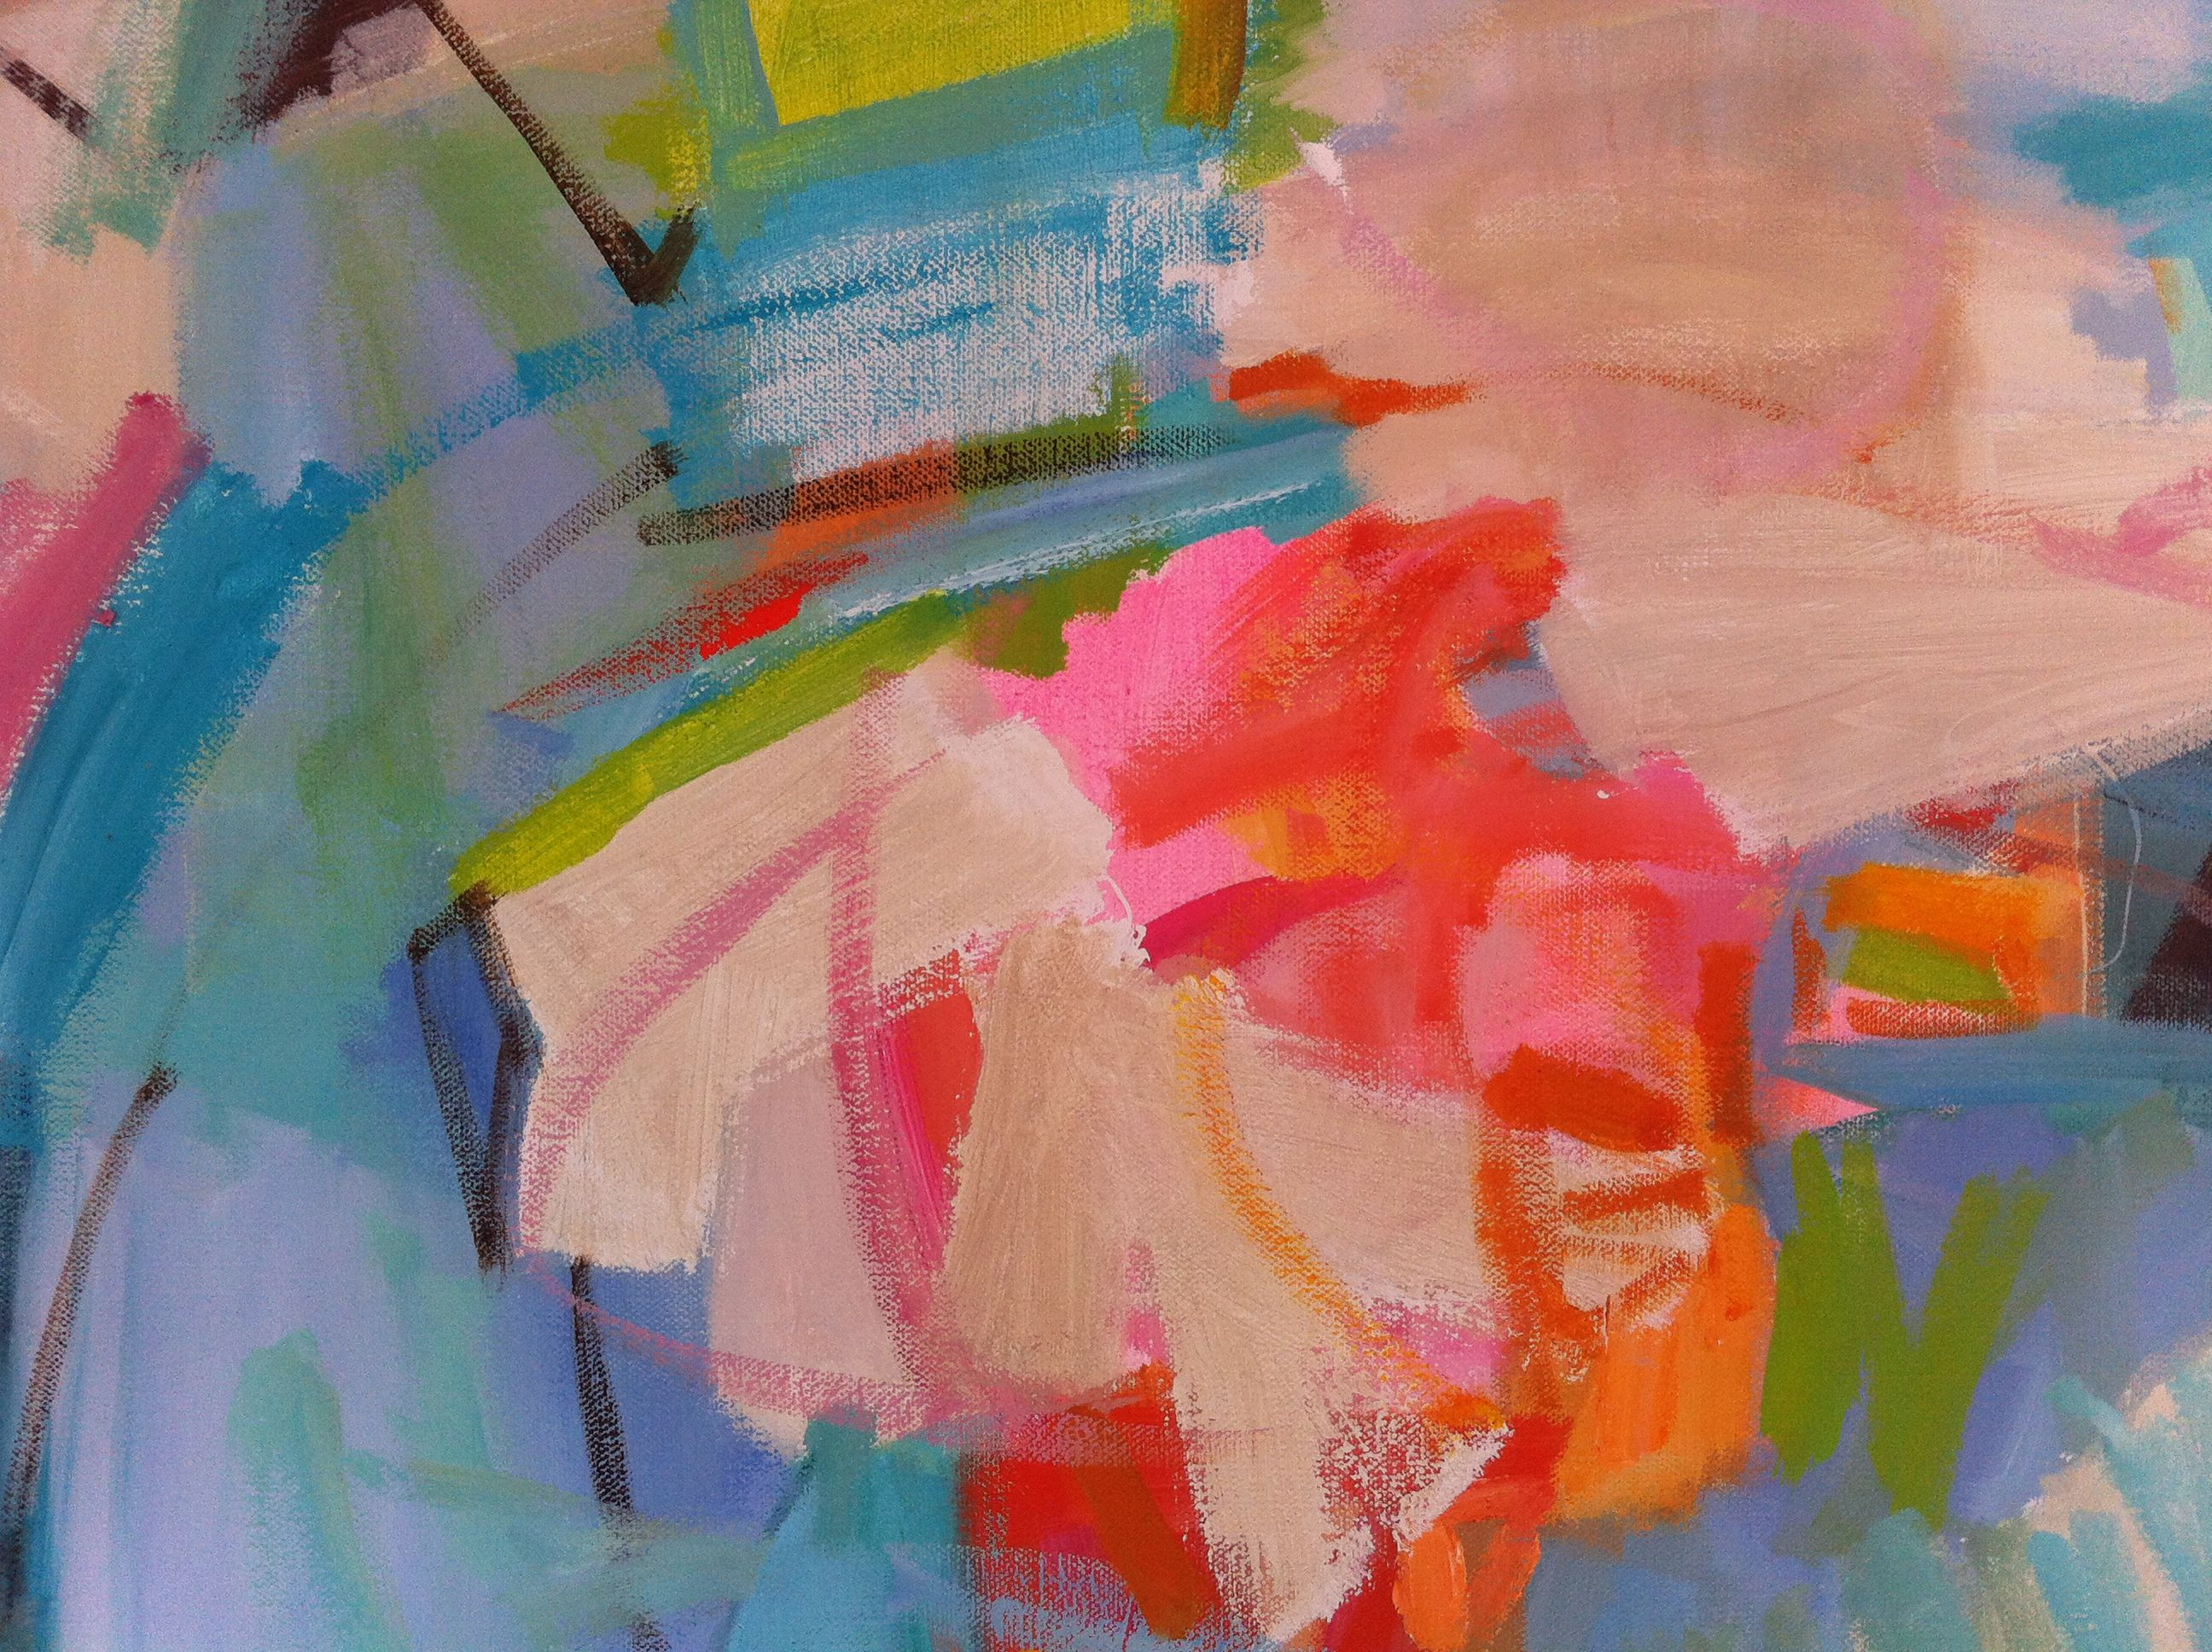 Detail of a reagan geschardt painting